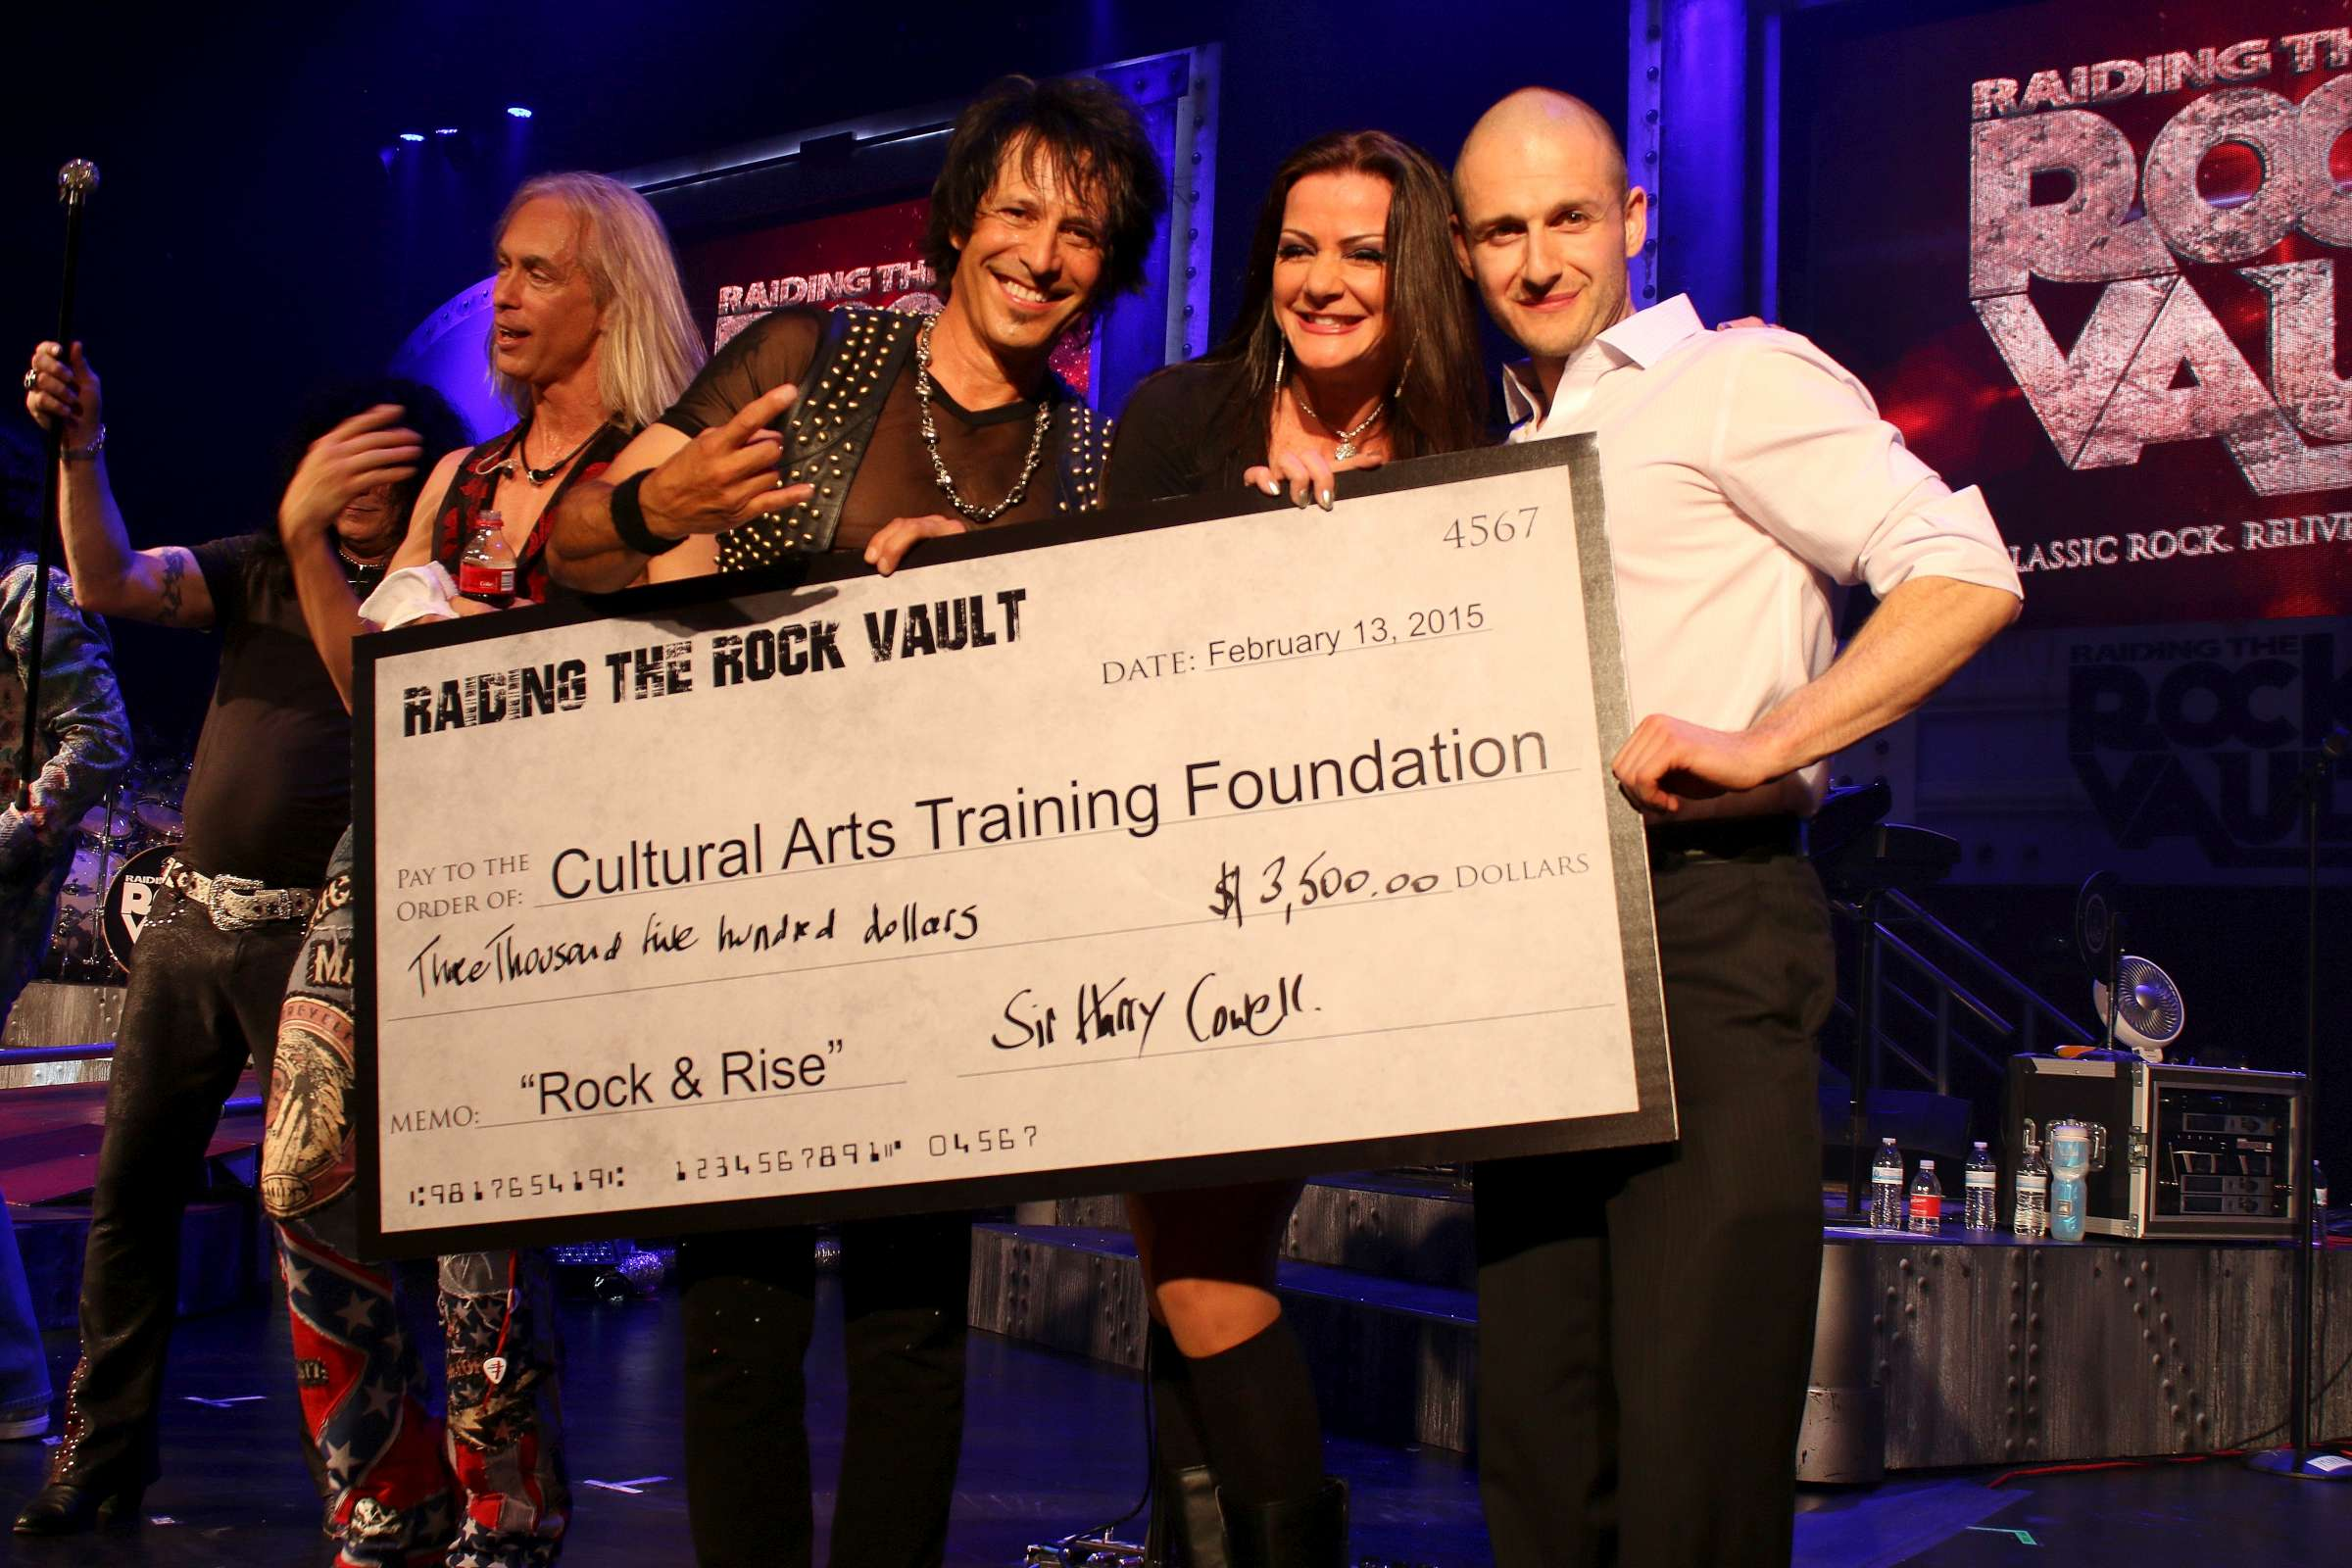 """Raiding the Rock Vault"" Raises $3,500 for The Cultural Arts Training Foundation at Friday, Feb. 13 Show"